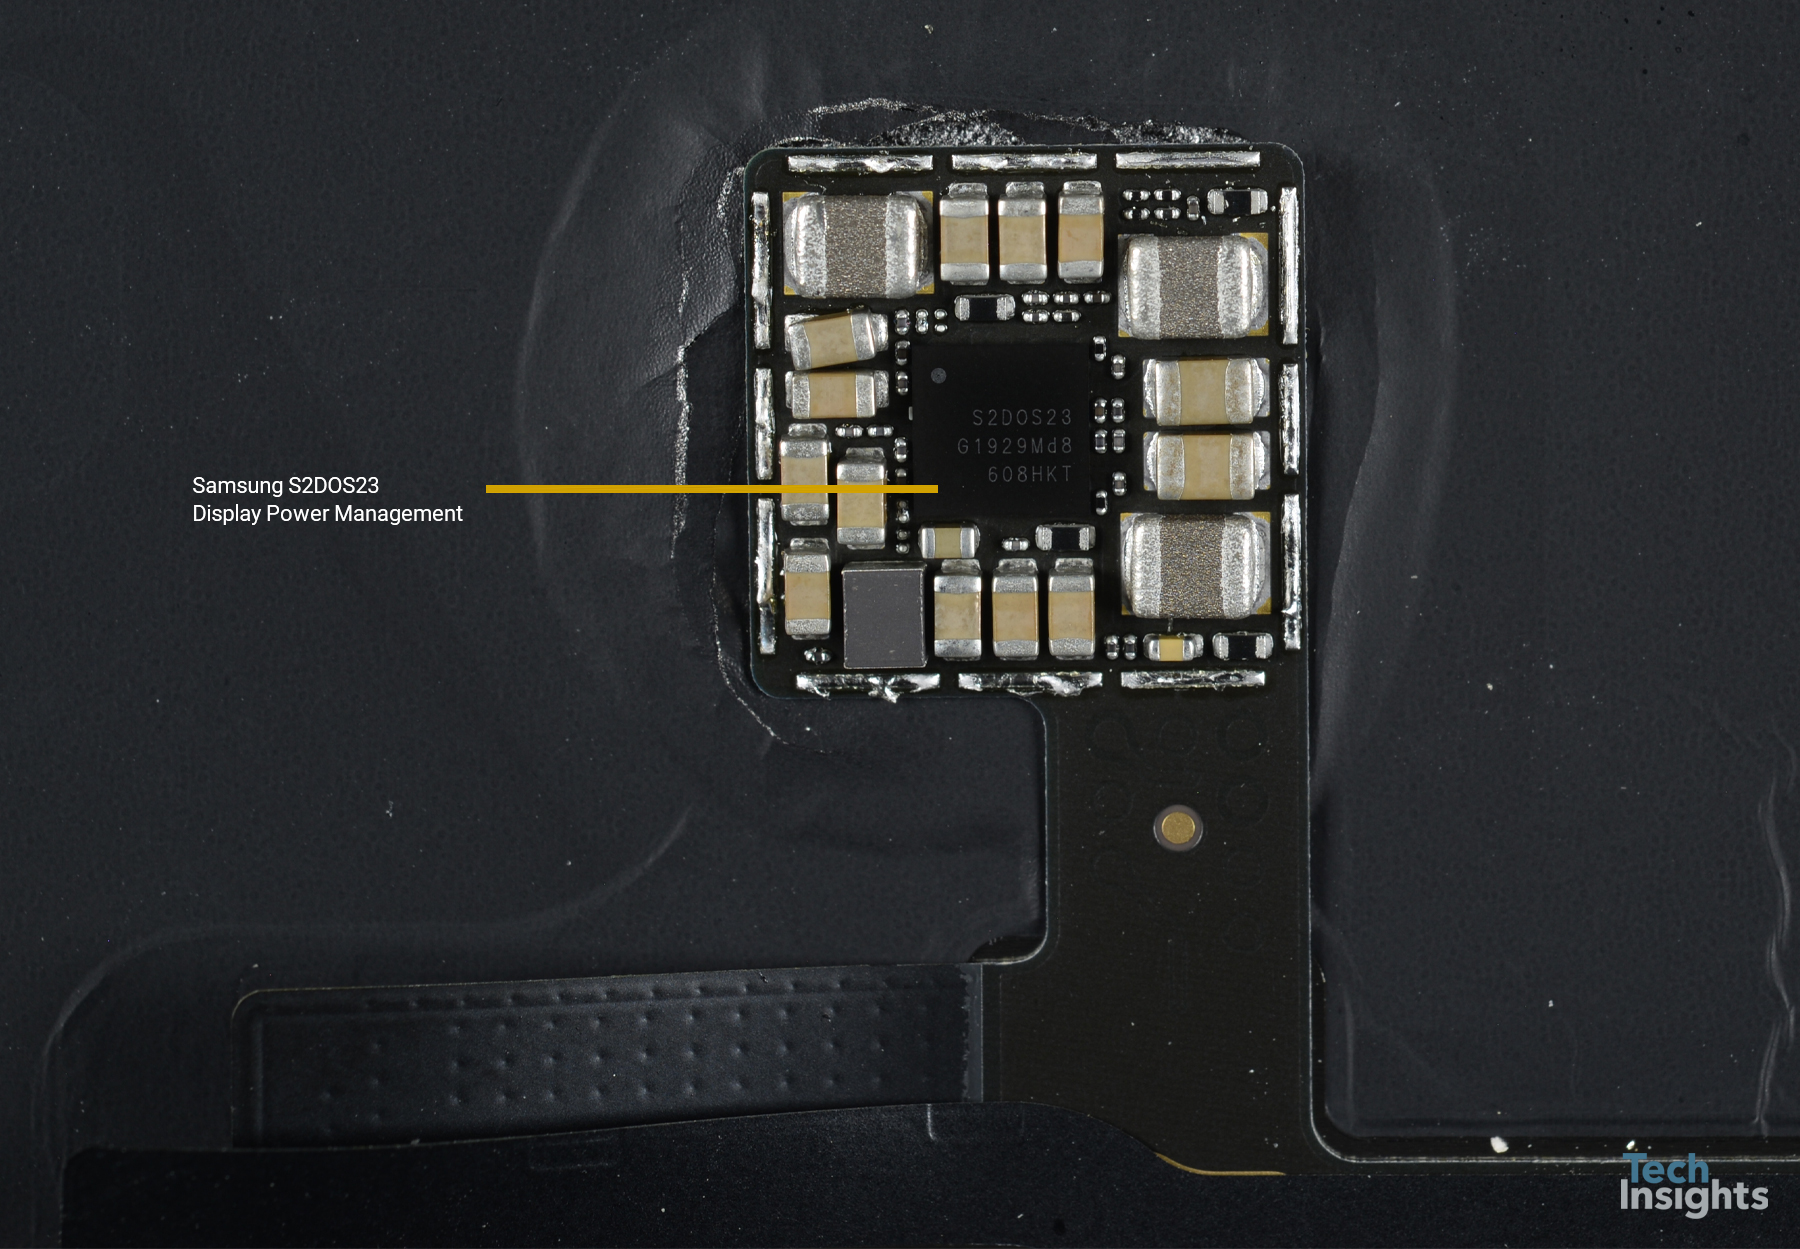 Apple iPhone 11 Pro Max - Board - Samsung S2DOS23